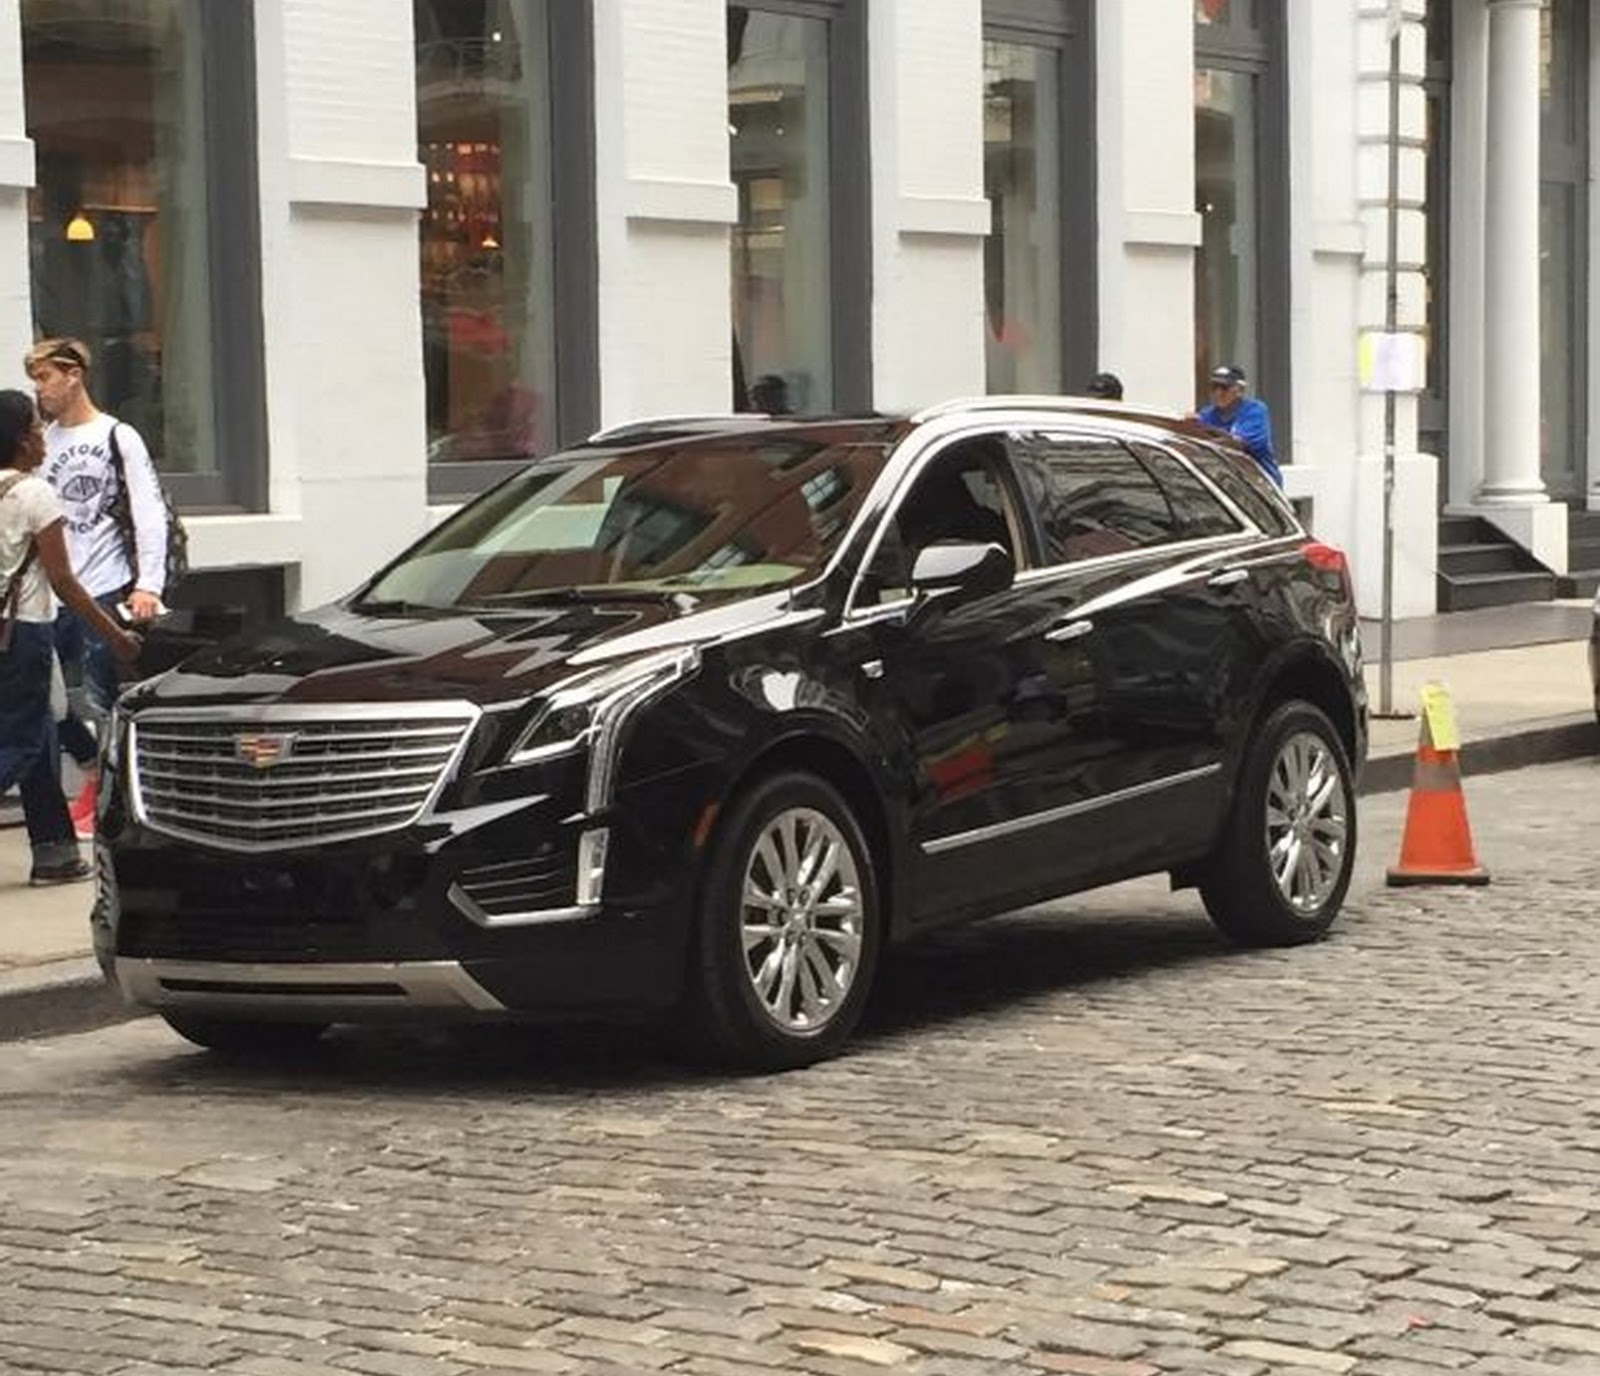 New 2016 Cadillac XT5 Spotted Undisguised! Replaces SRX